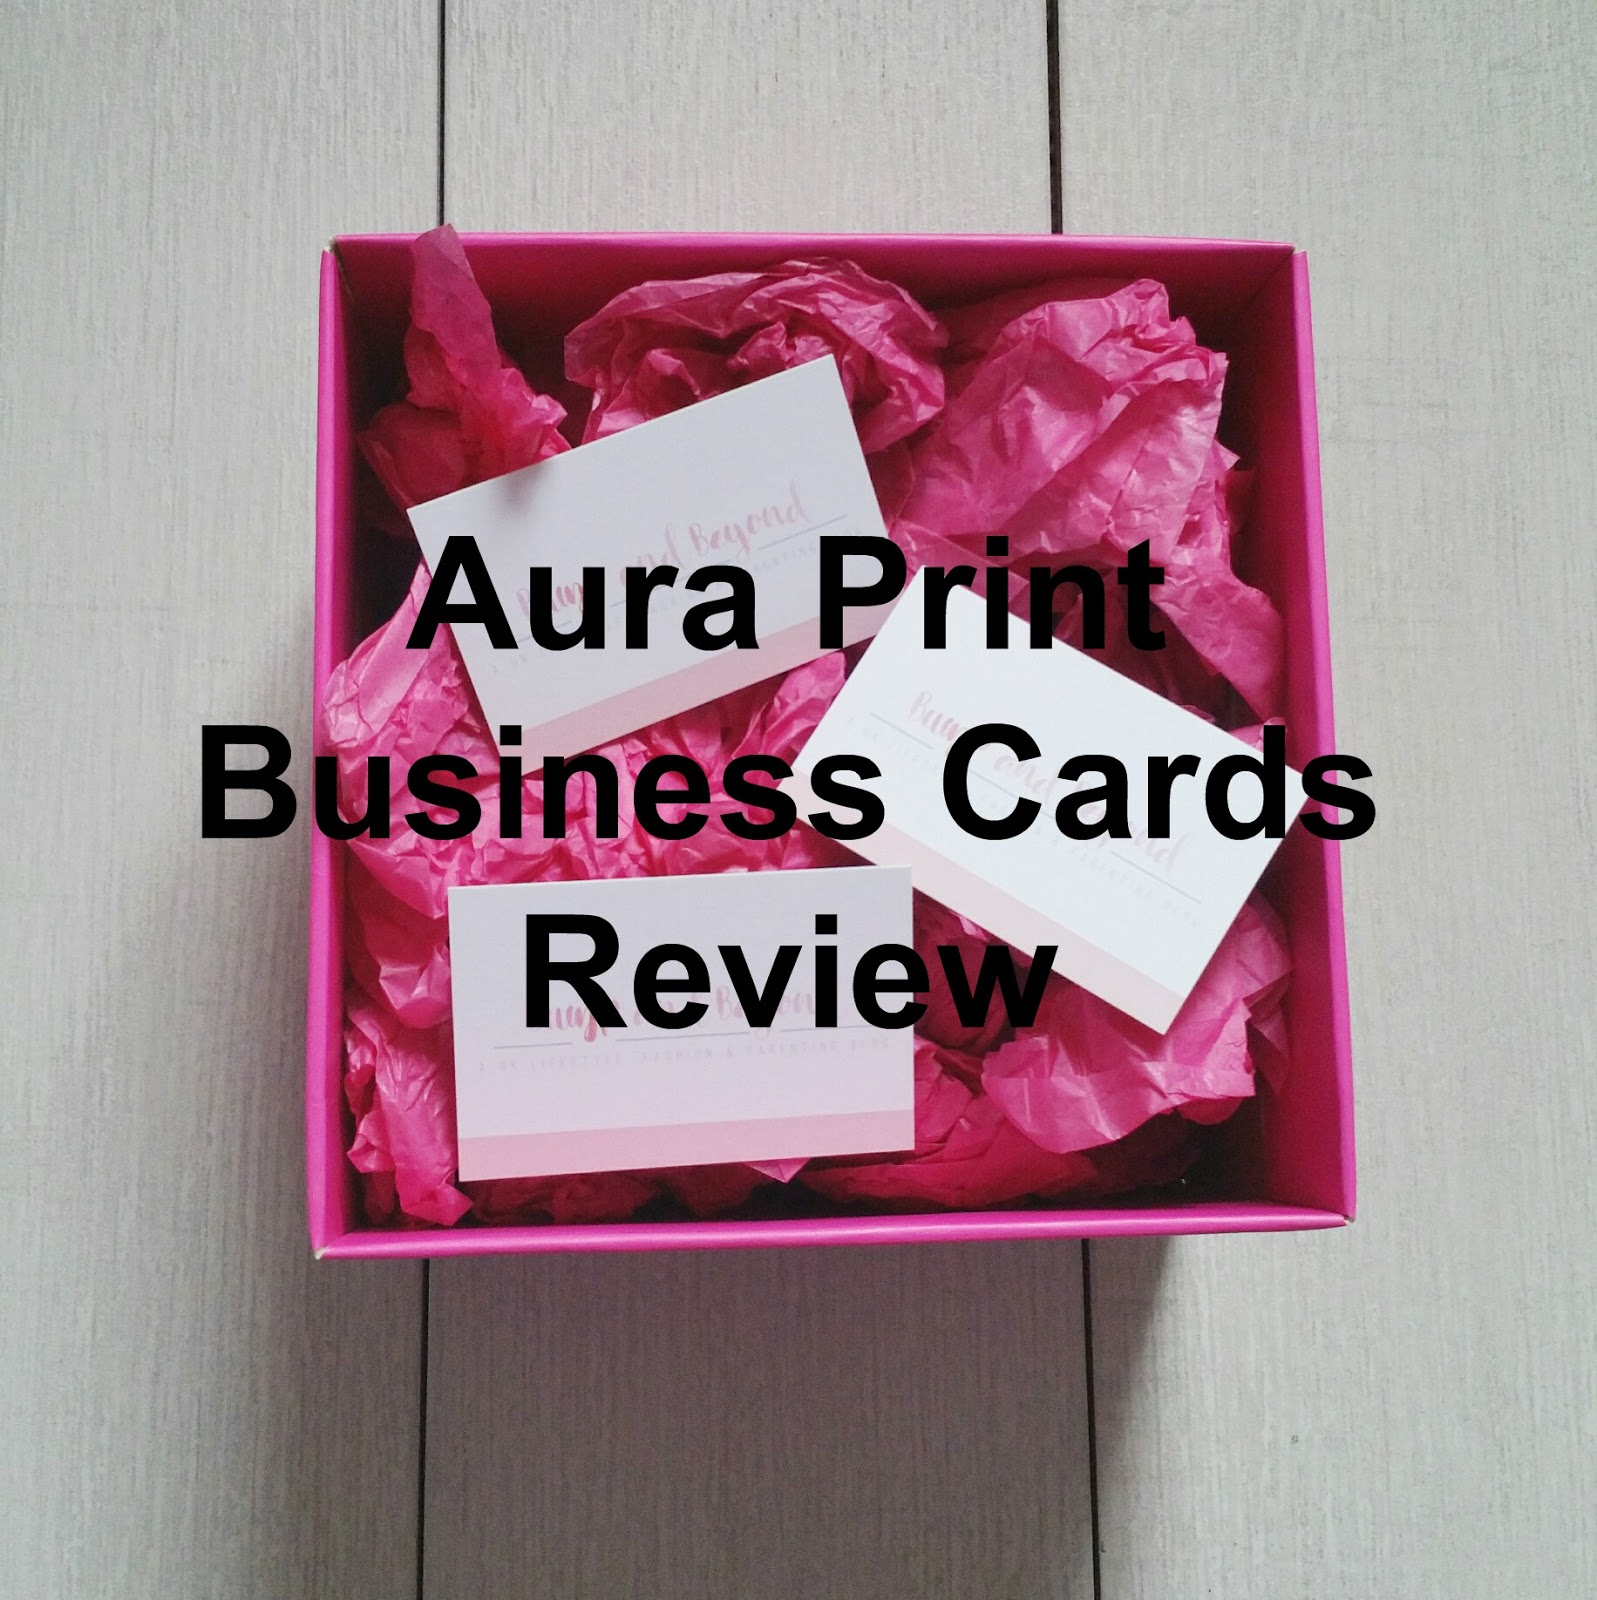 Review | Aura Print Business Cards*